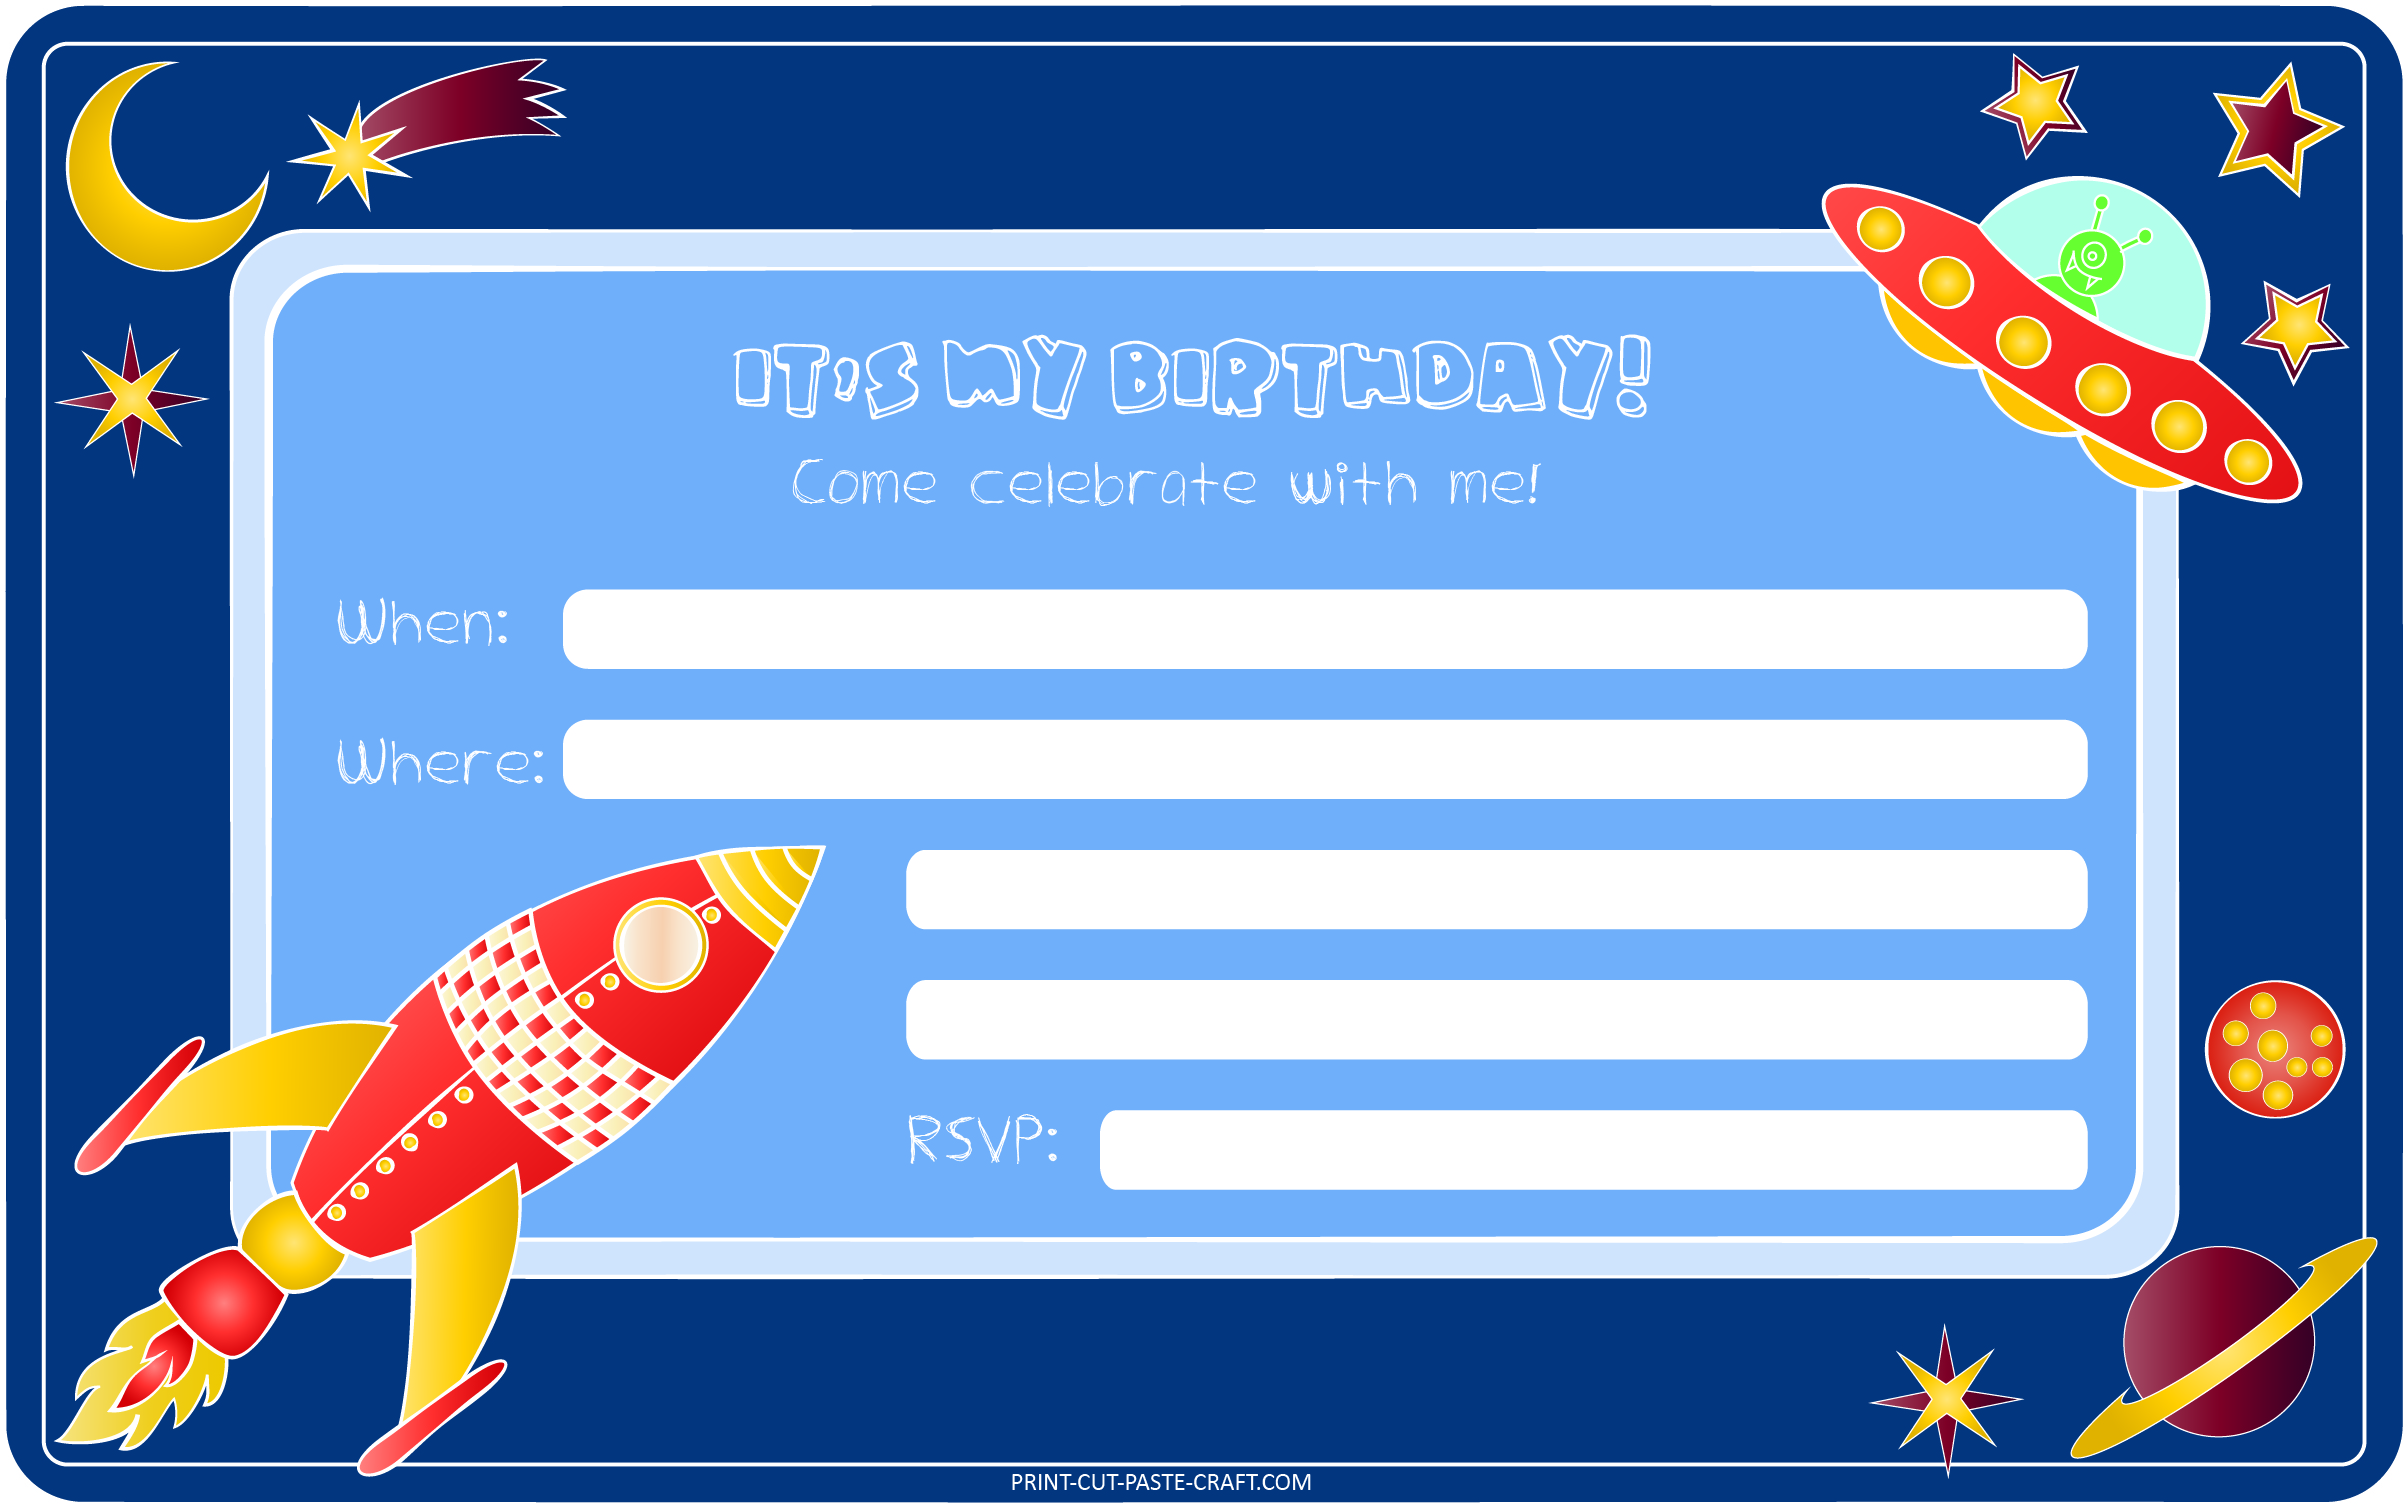 birthday invitation card with photo free ; free-birthday-cards-fmhrckaw-blue-background-design-rocket-planet-images-creations-style-unique-printable-birthday-invitation-cards